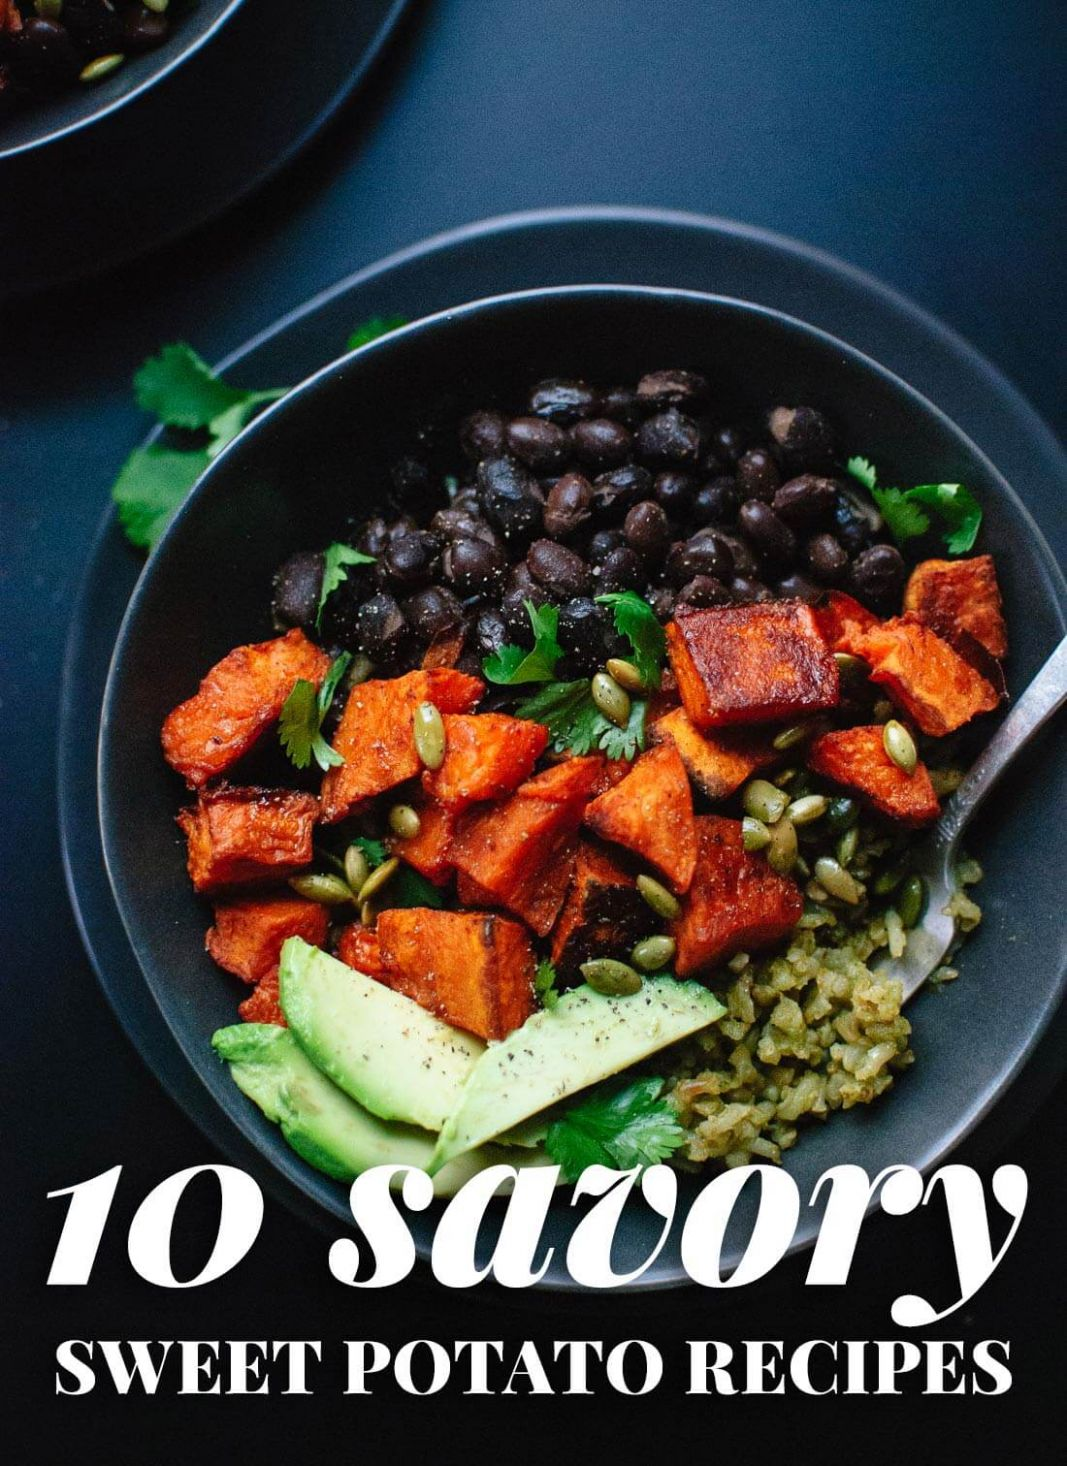 11 Savory Sweet Potato Recipes - Cookie and Kate - Summer Yam Recipes